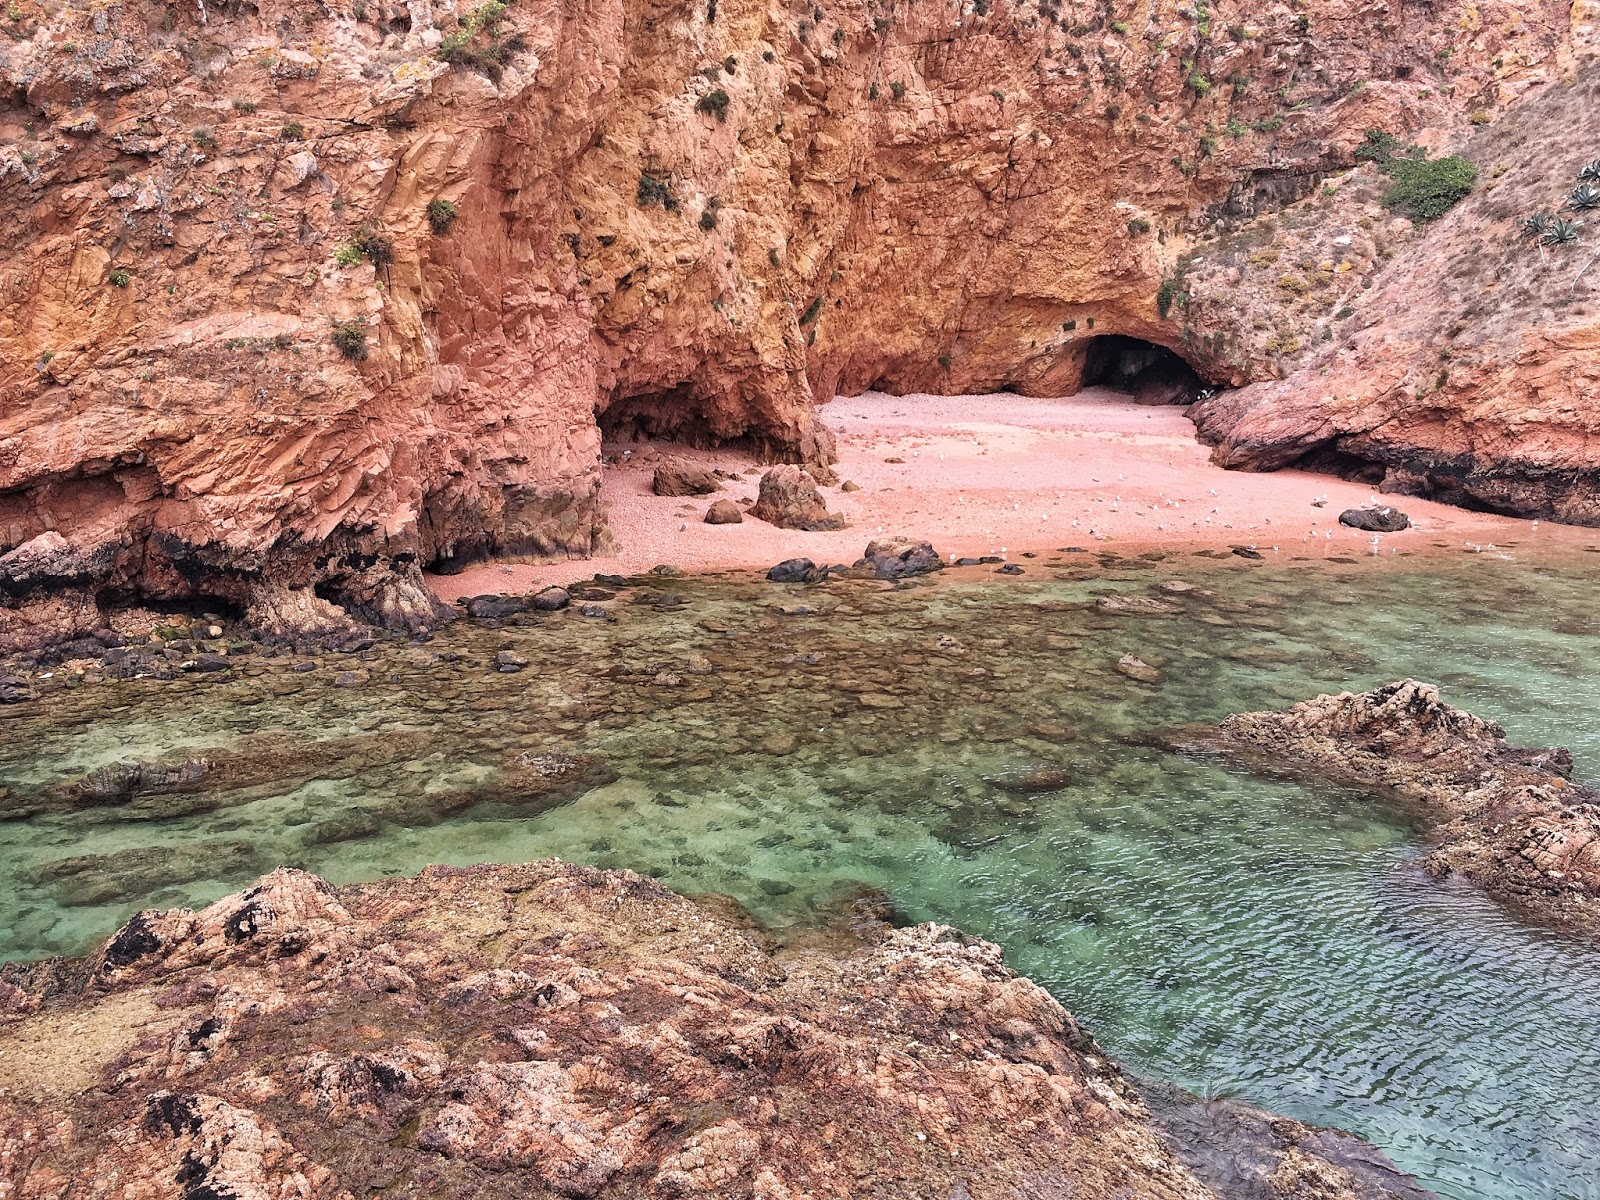 Berlengas islands, Portugal, ejnets